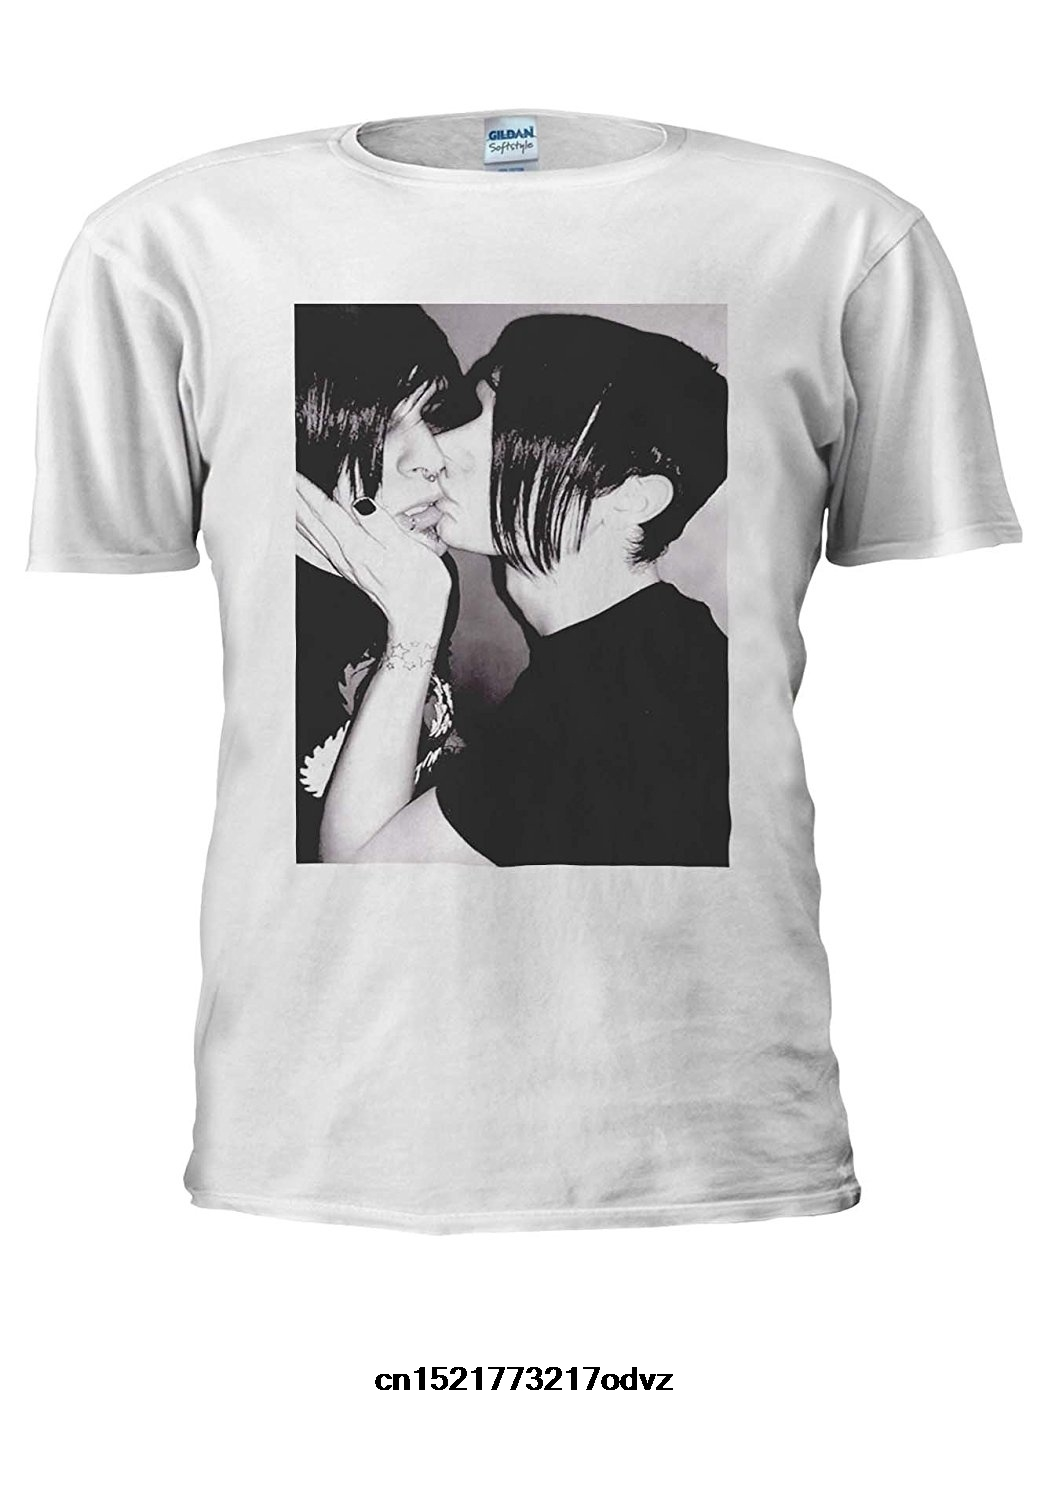 Men T Shirt Emo Gay Kissing Love Tumblr Blogger Funny T Shirt Novelty Tshirt Women In T Shirts From Mens Clothing Accessories On Aliexpress Com Alibaba